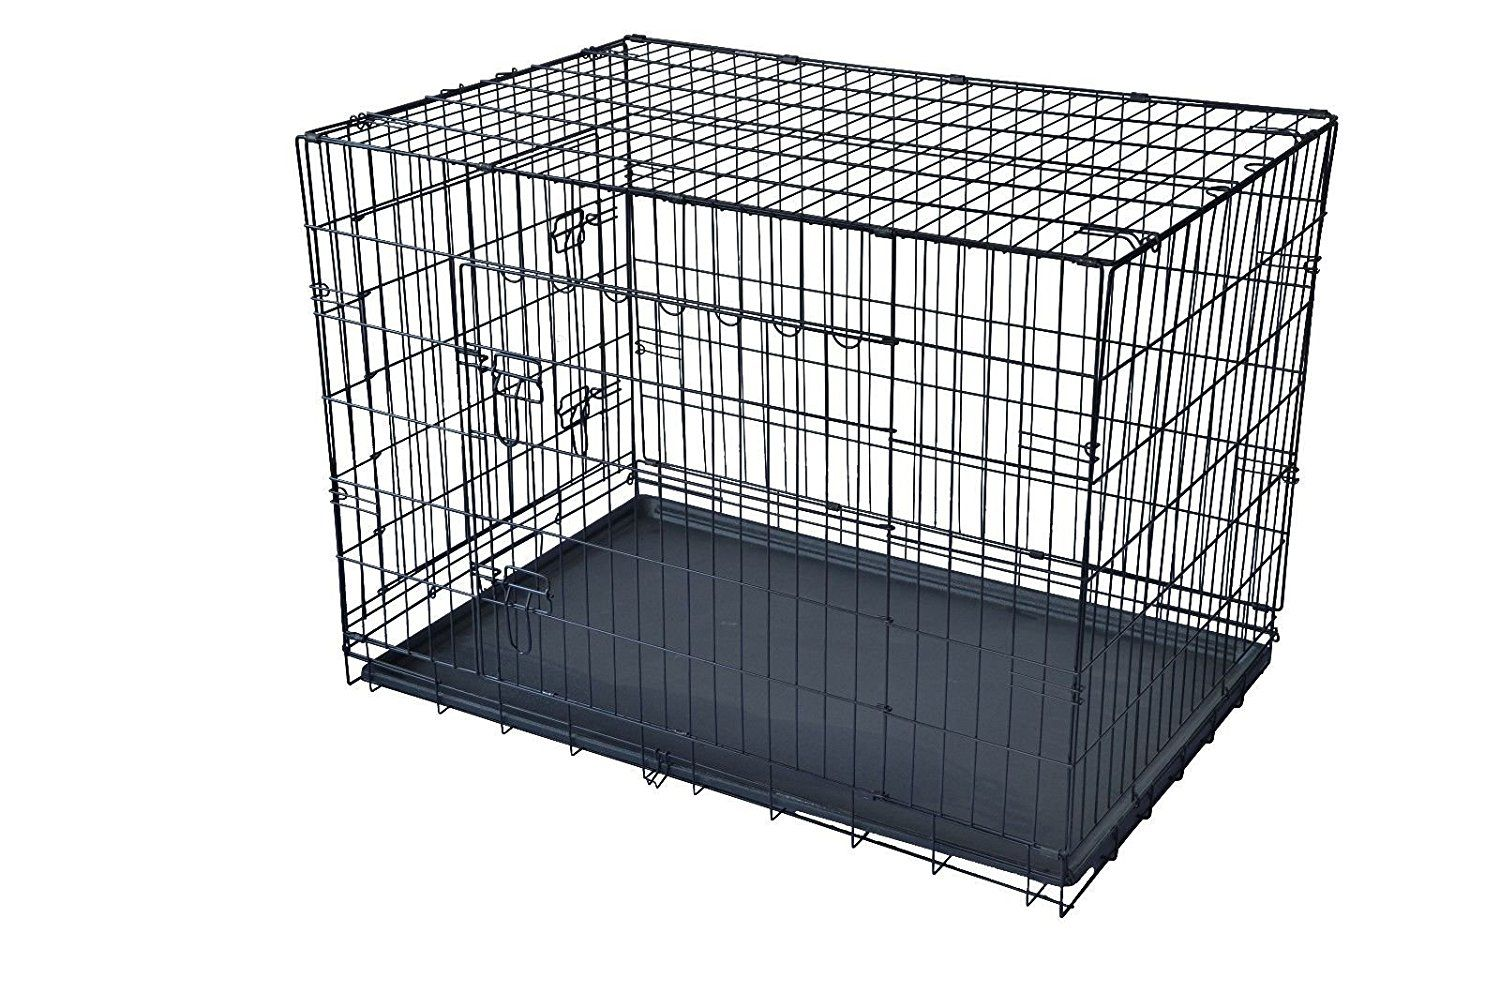 Tru Squishy Face Black 48 2 Door Pet Cage Folding Dog W Divider Cat Crate Cage Kennel W Tray Lc Check This Awesome Image Cat Crate Dog Cages Xxxl Dog Crate